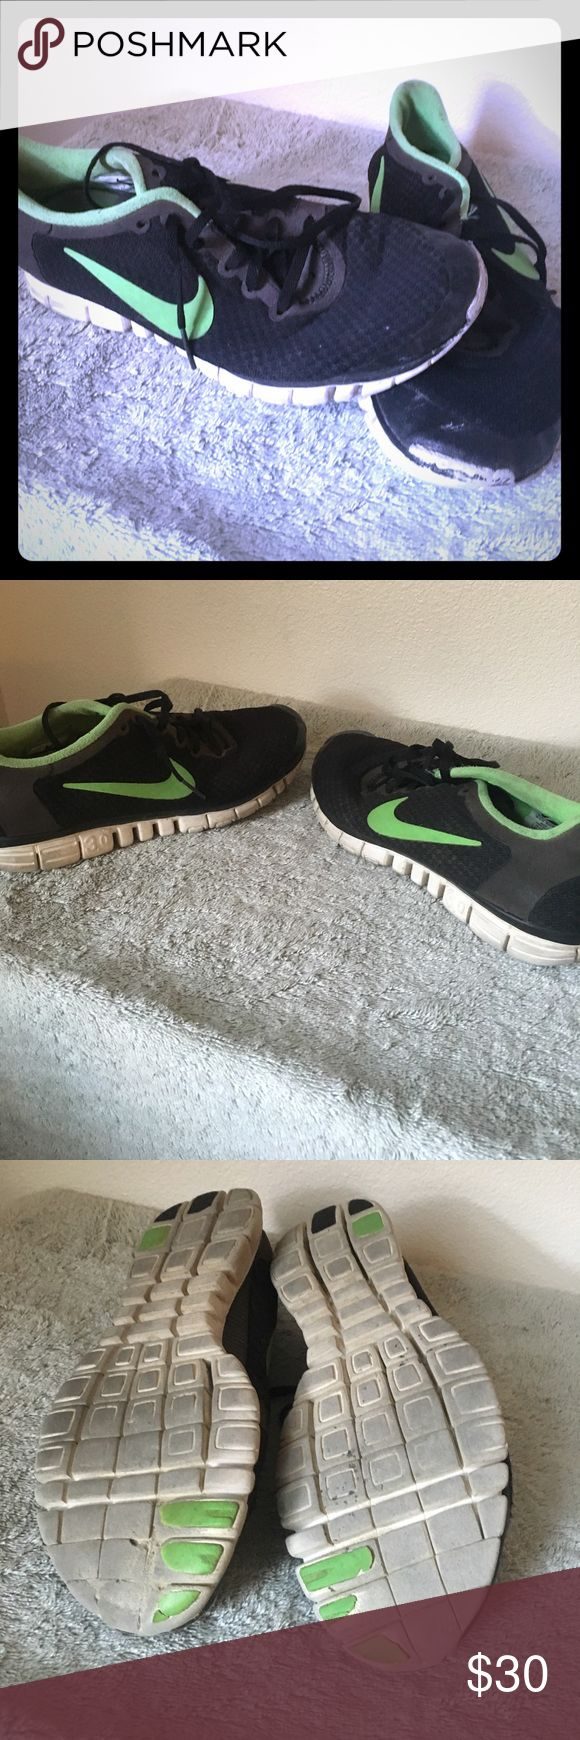 Nike free 3.0 size 9.5 Nike Frees 3.0 series black with green Nike swoosh! They are amazing size 9.5 Nike Shoes Sneakers